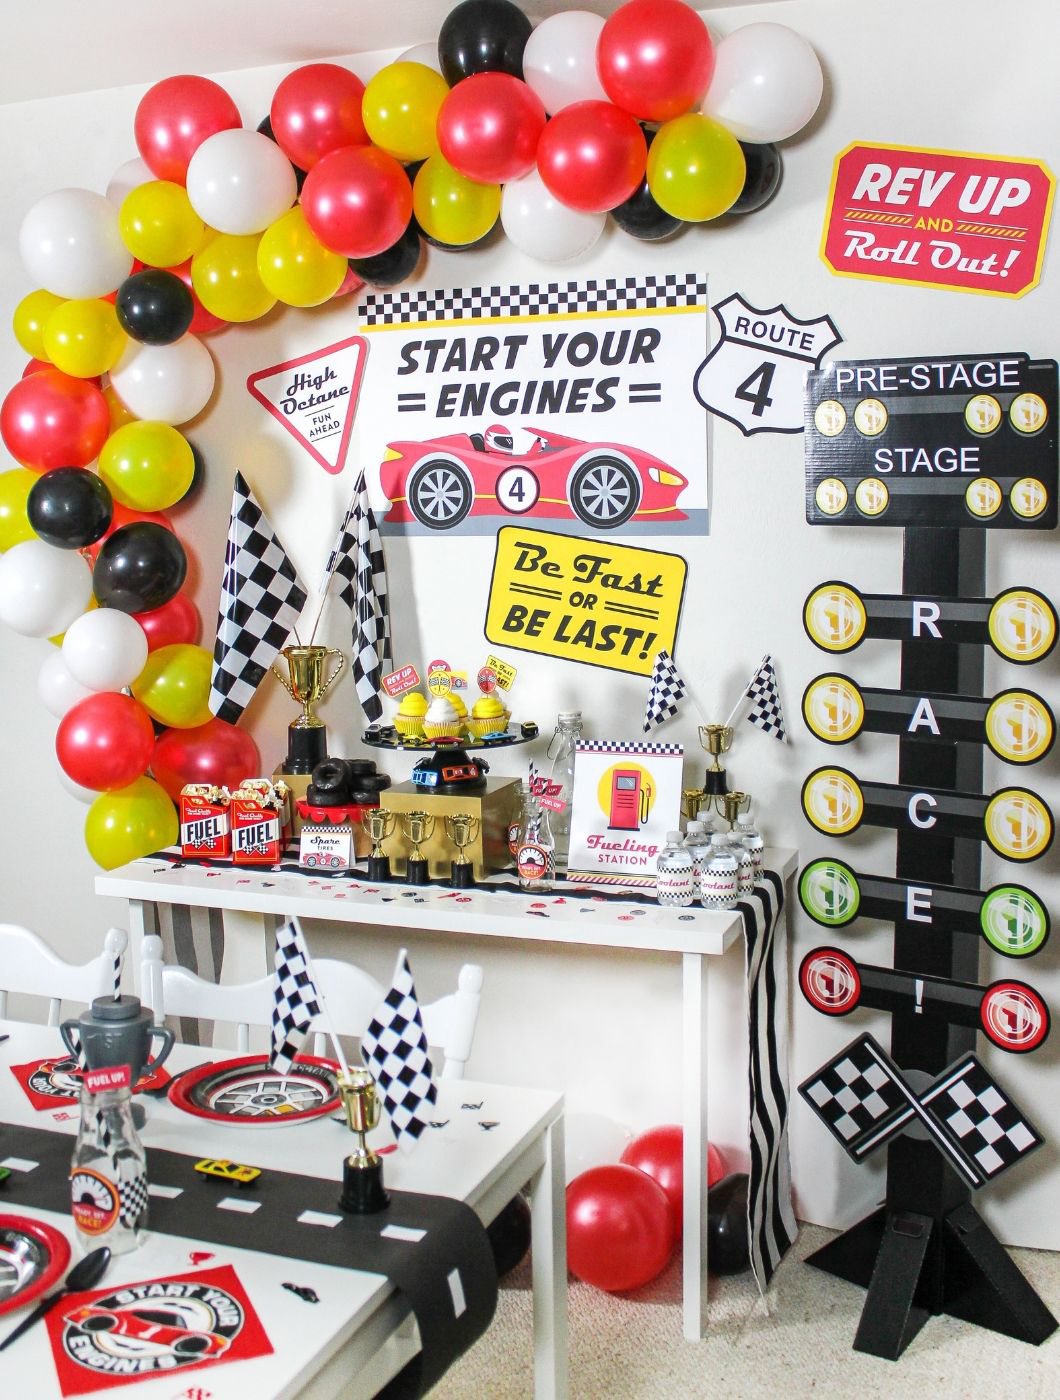 race car party, oriental trading, Fun365, partnership, free printable, party printables, grab a pit pass, race car, sugar rush raceway, start your engines, brand partner, Just Add Confetti, be fast or be last